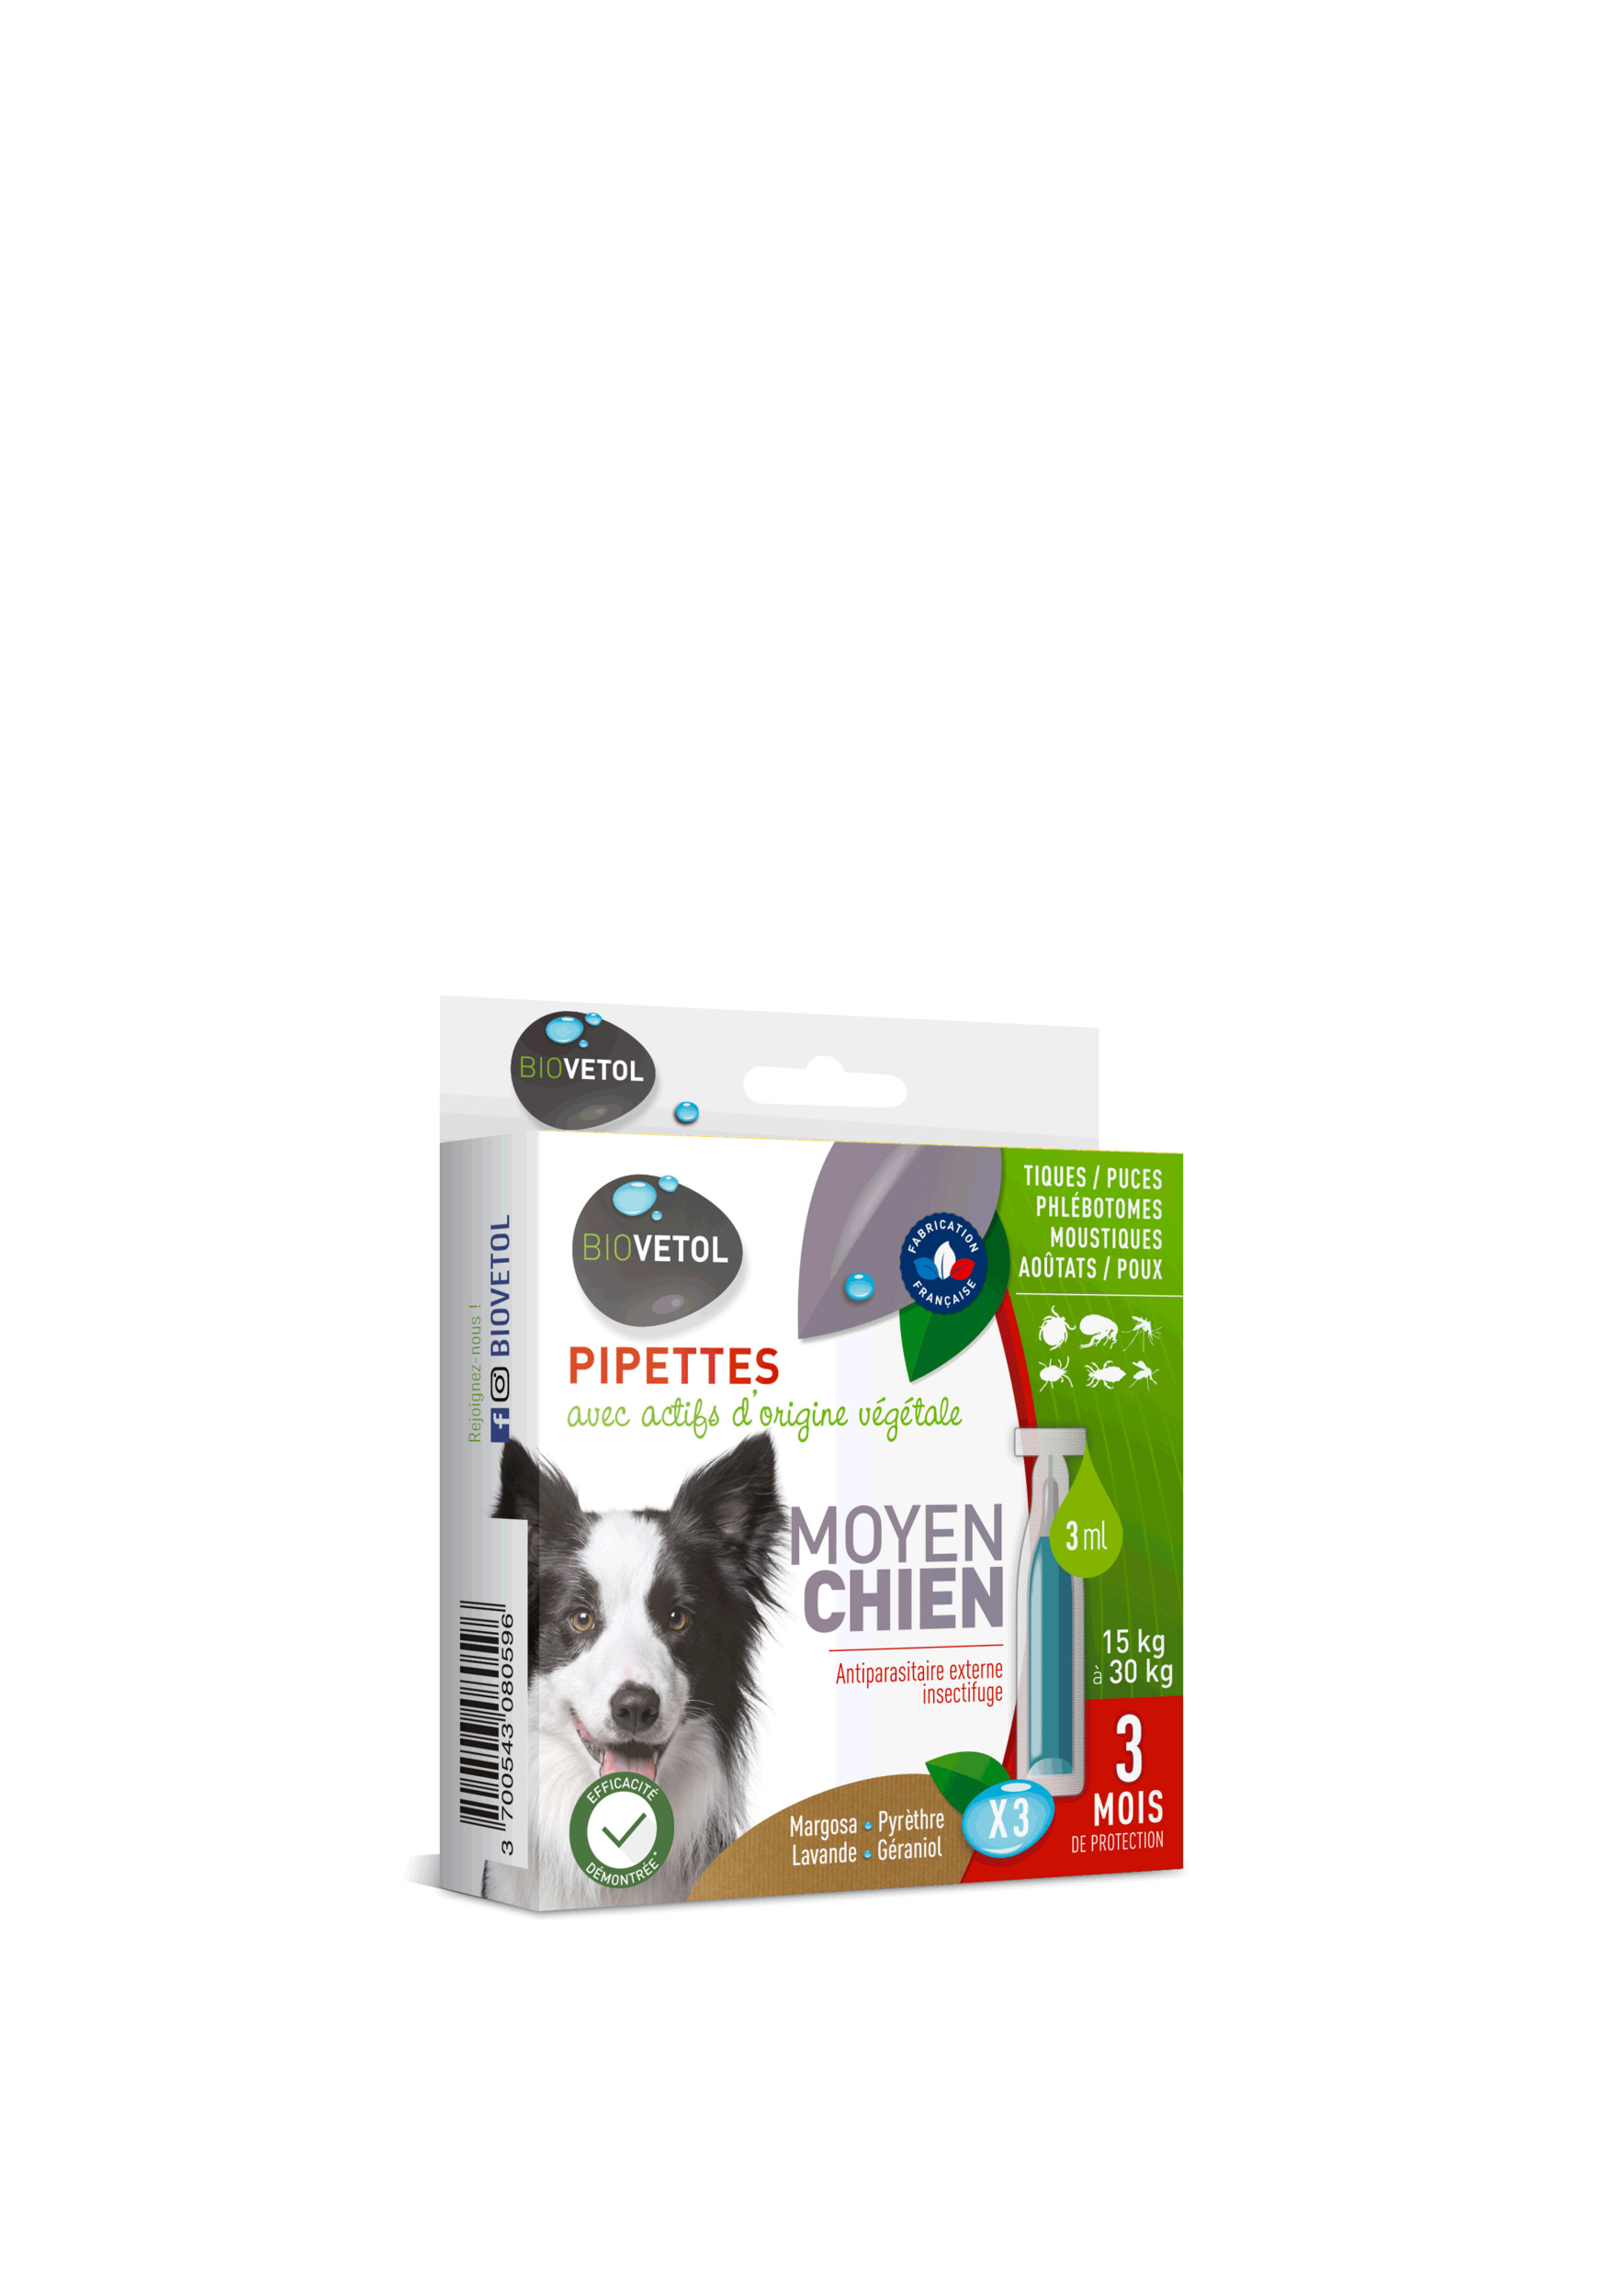 Pipettes insectifuge pour Chien Moyen